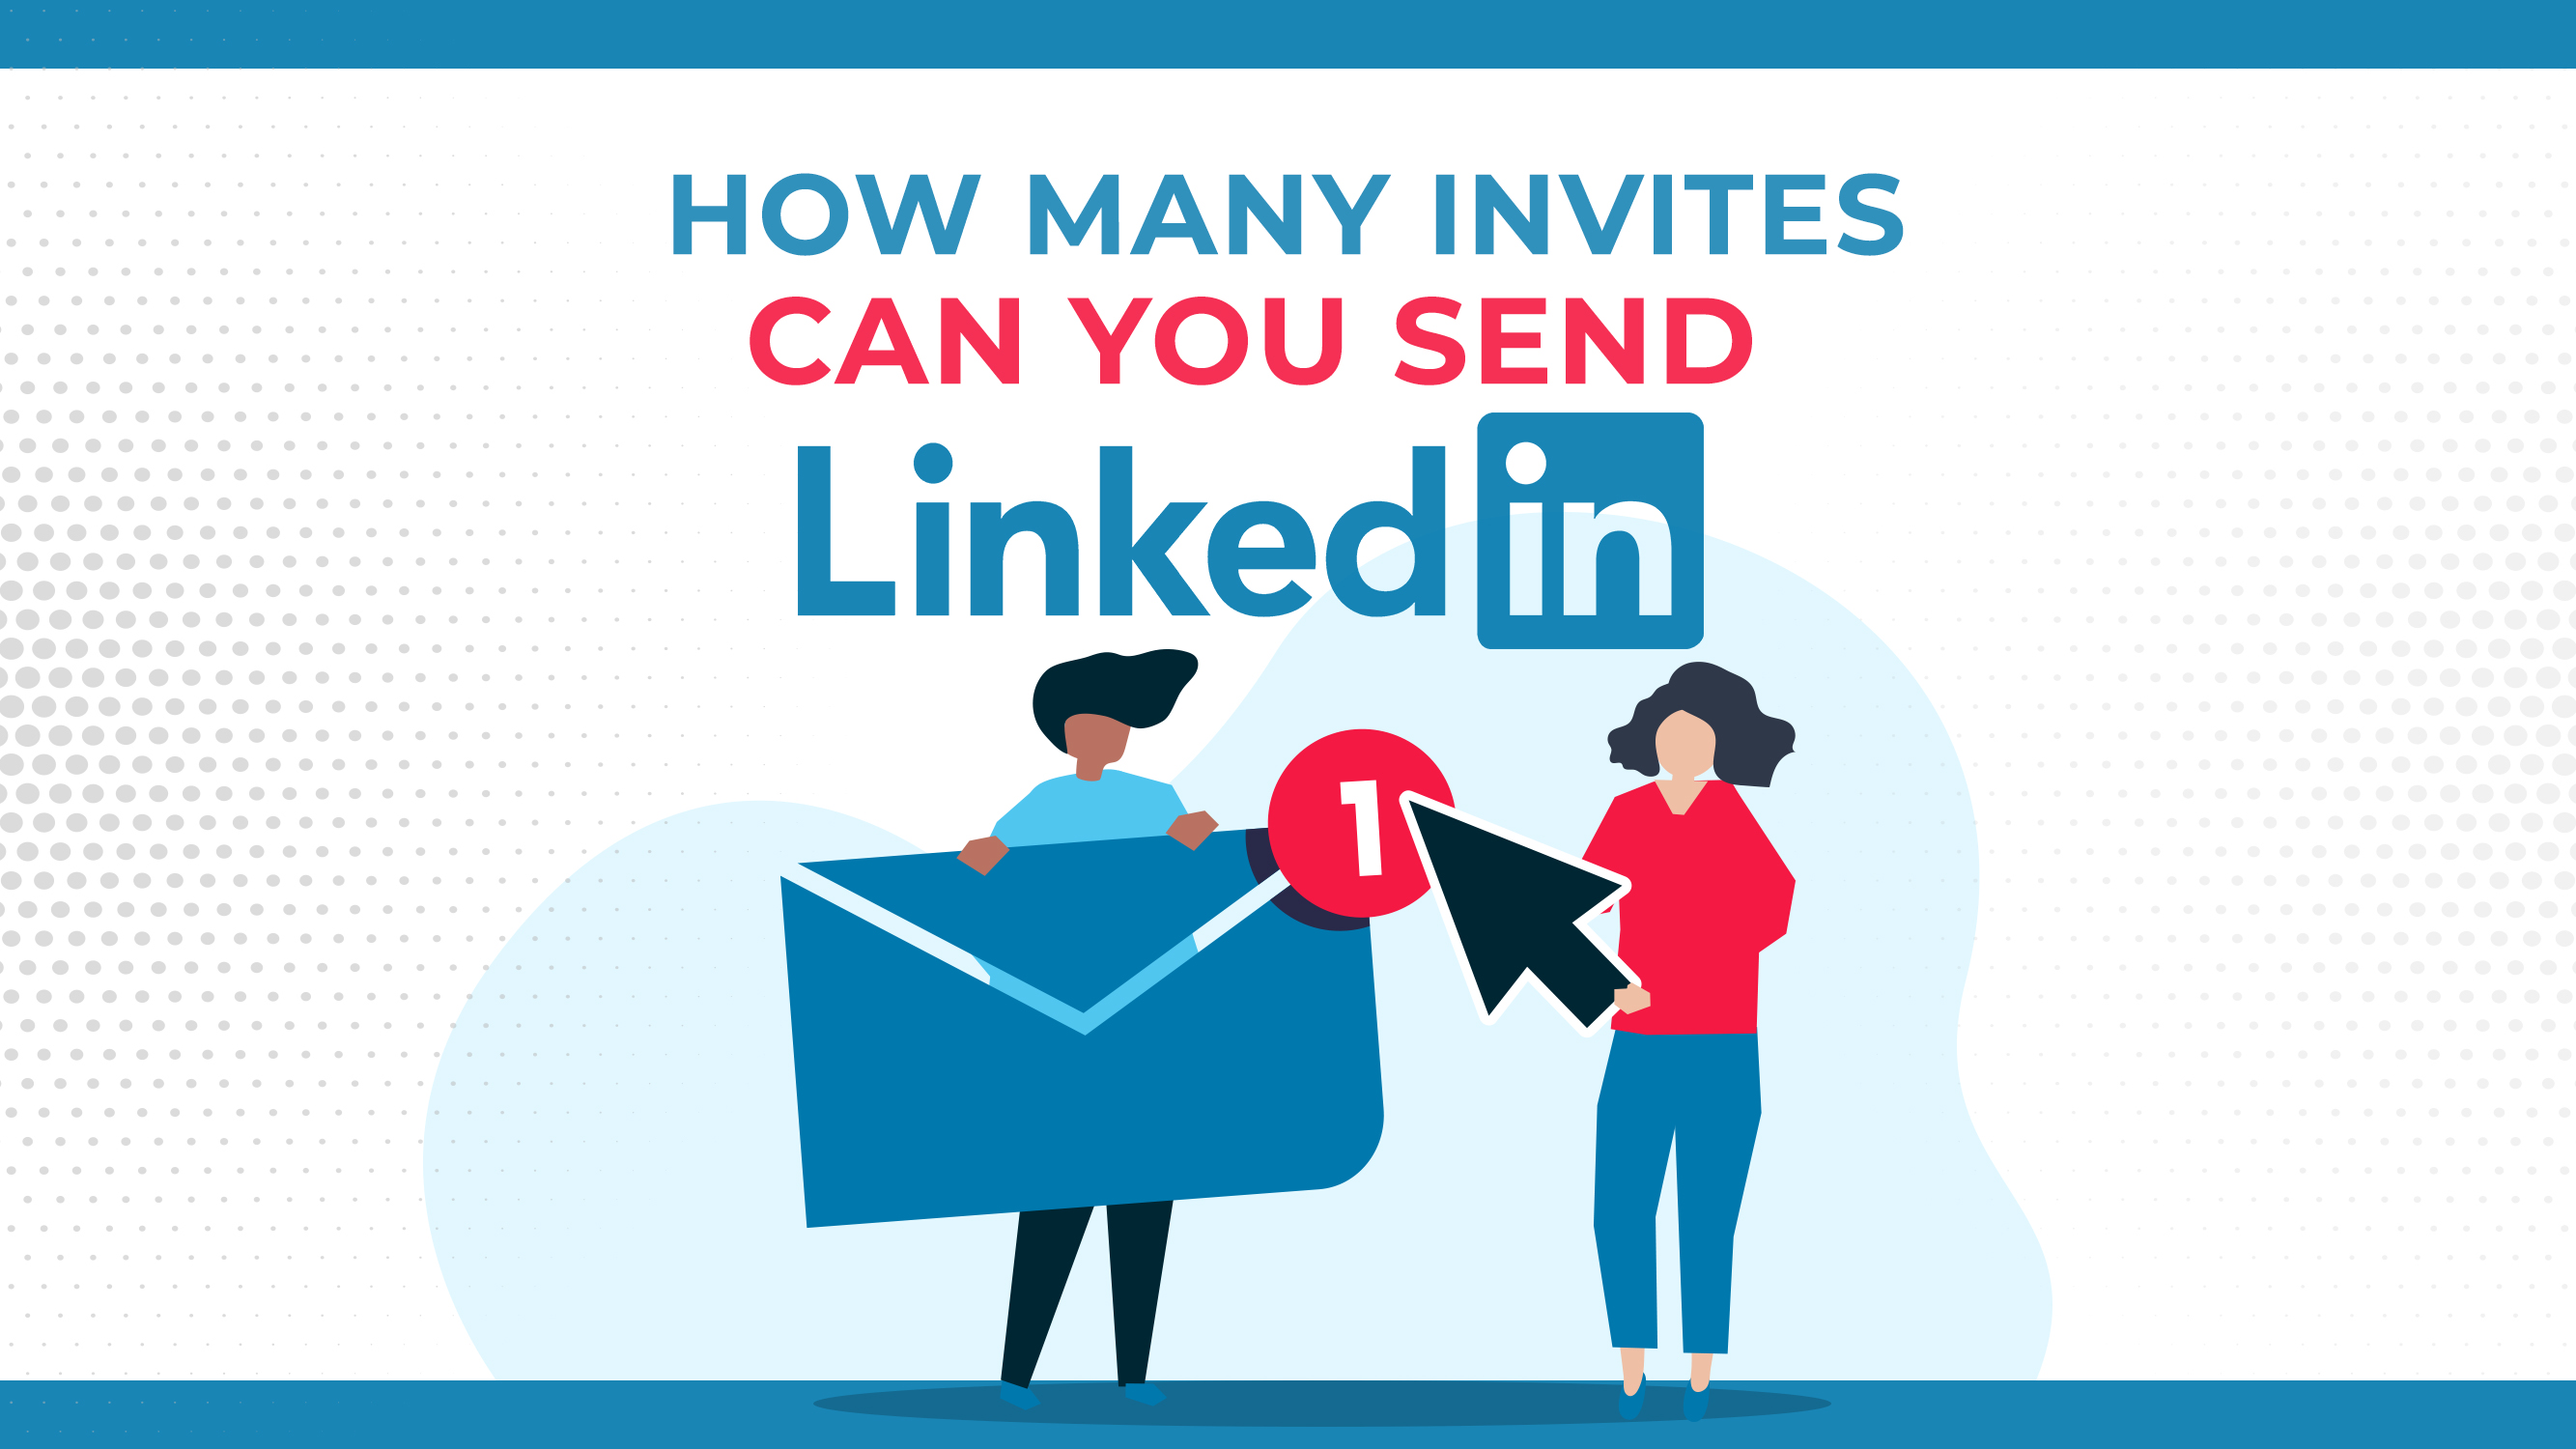 LinkedIn Invites: How Many Can you Send?